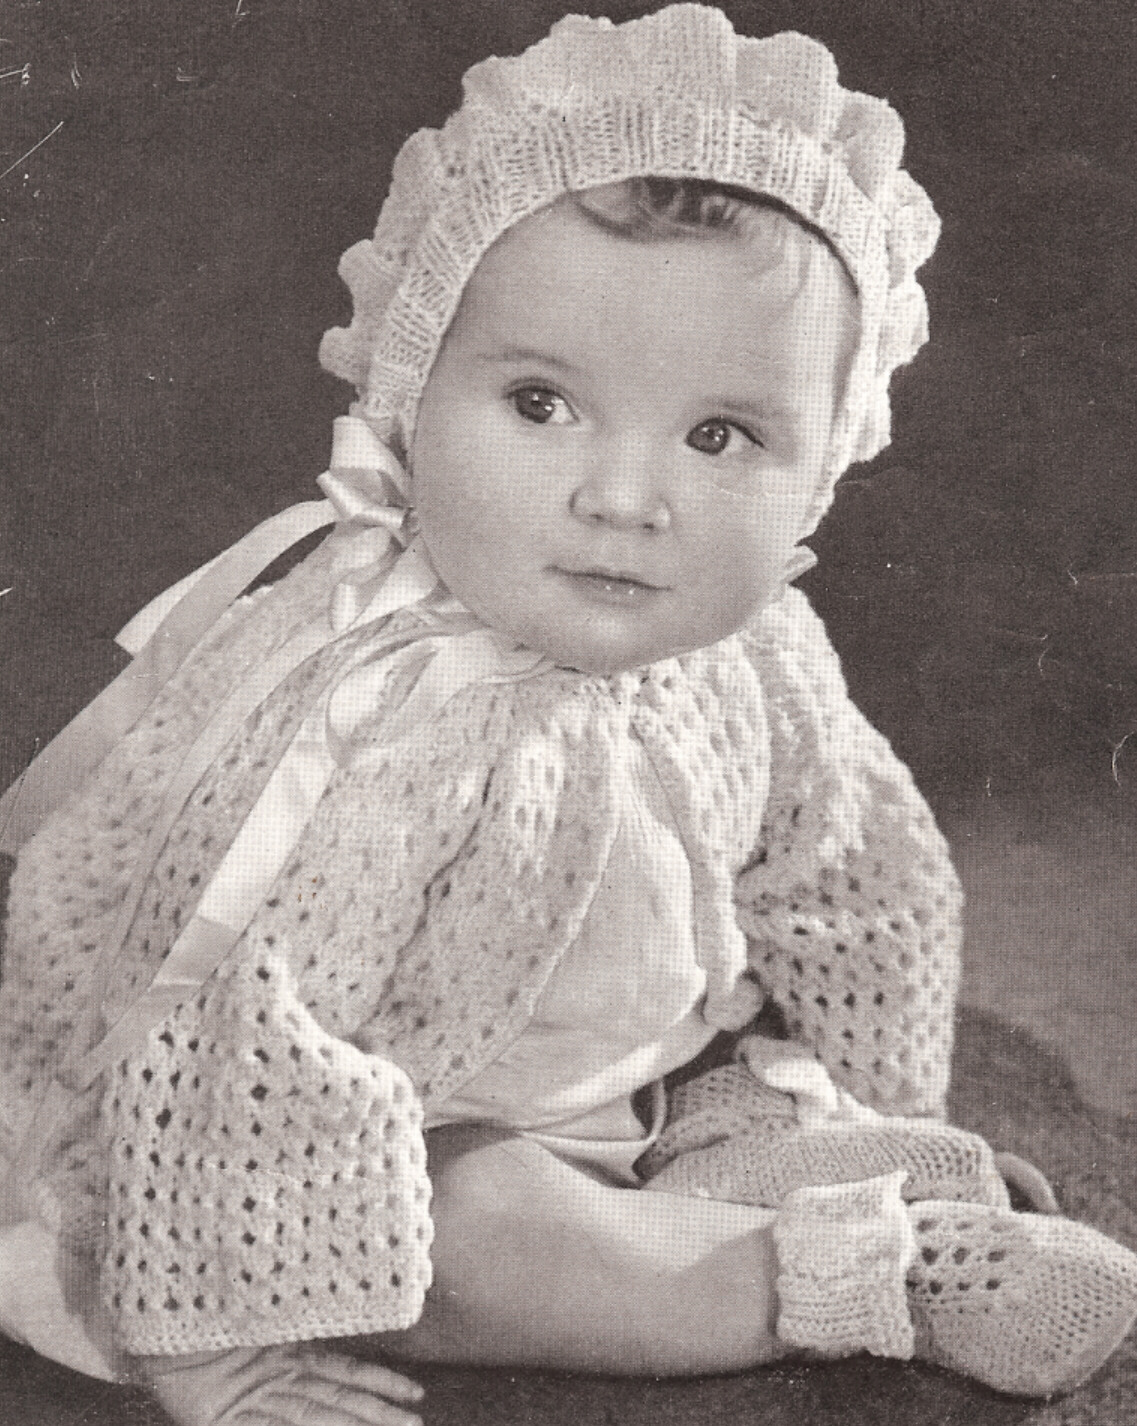 Vintage Knitting Pattern To Make Baby Bonnet Sweater